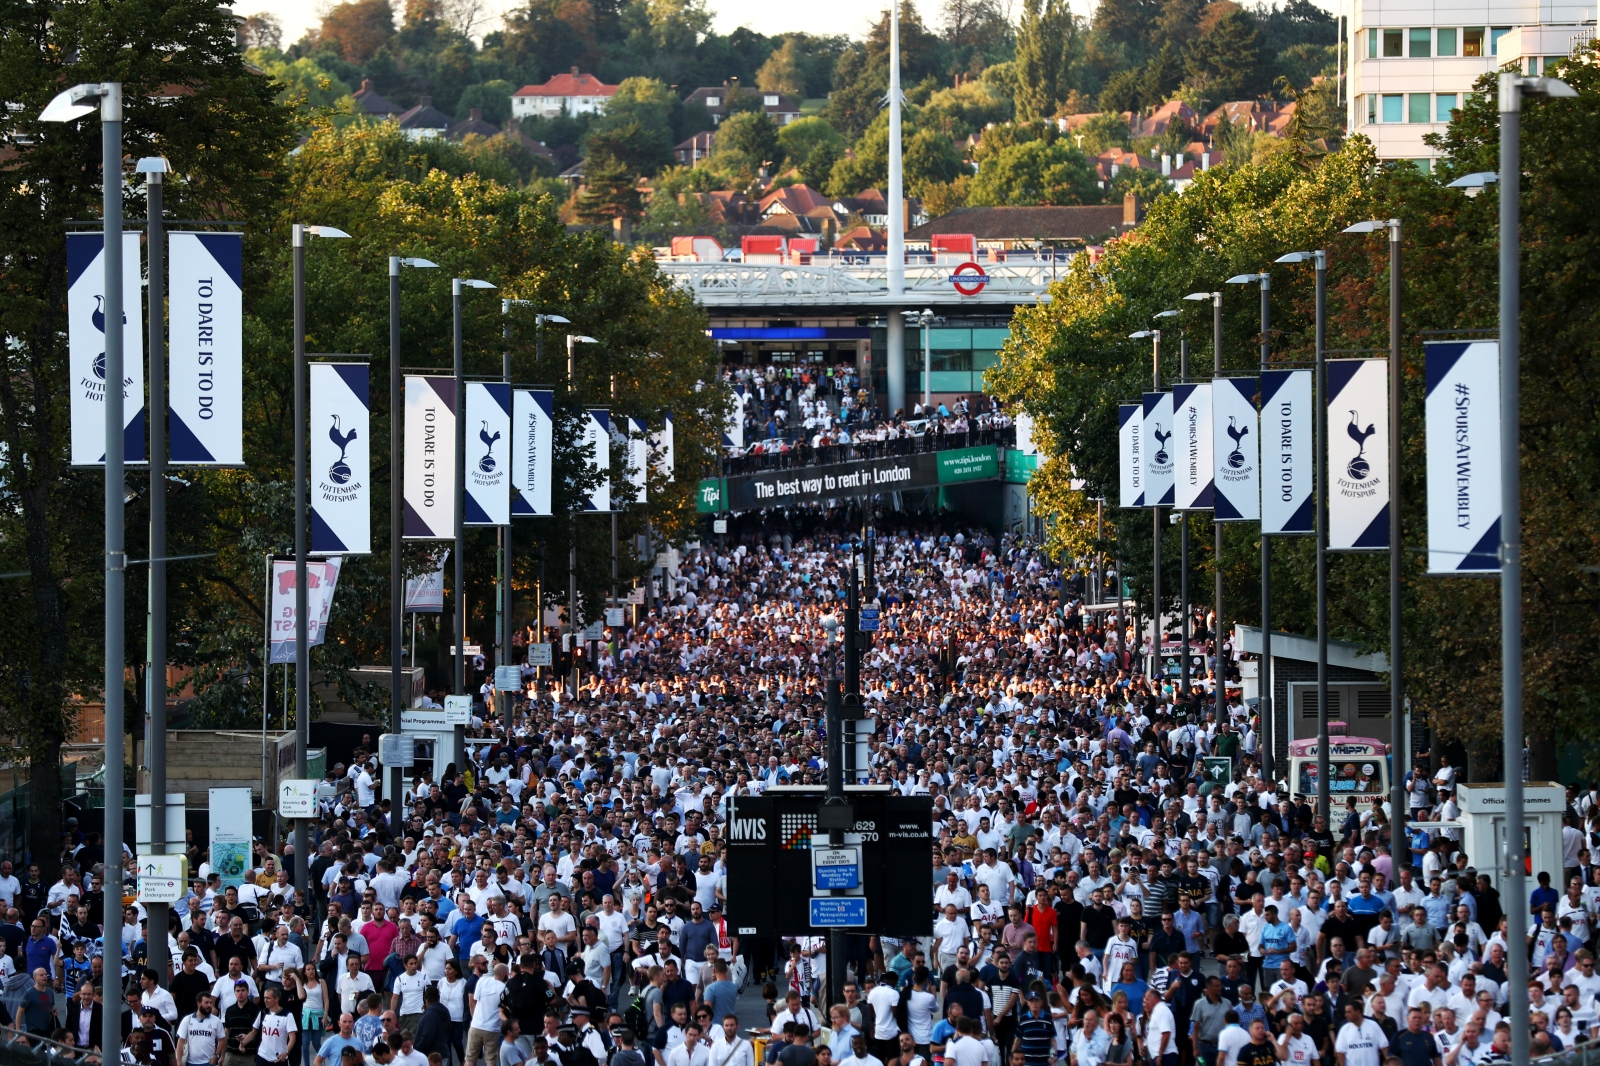 Tottenham fans head into Wembley